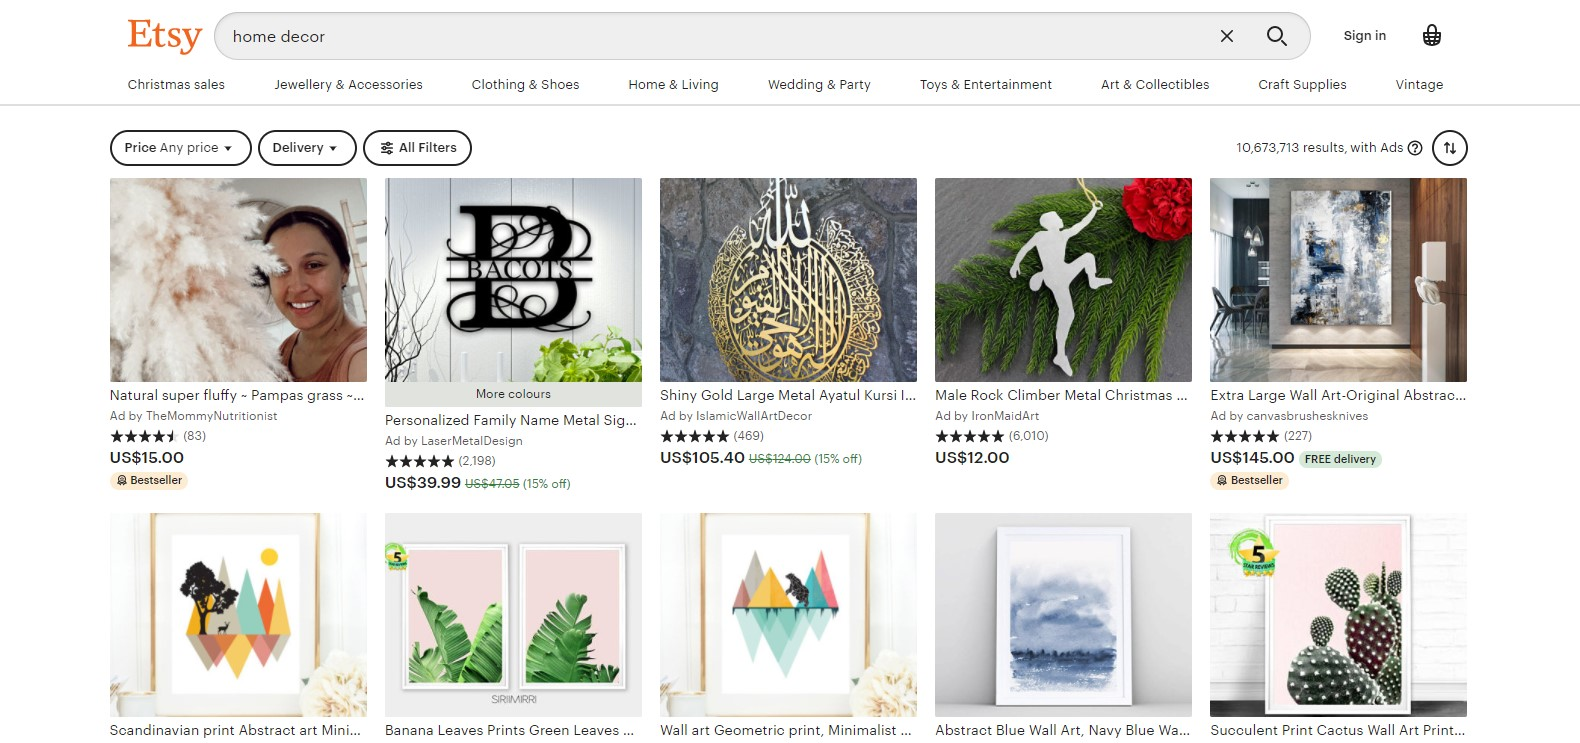 Home decor - Top 10 Best Selling Items on Etsy